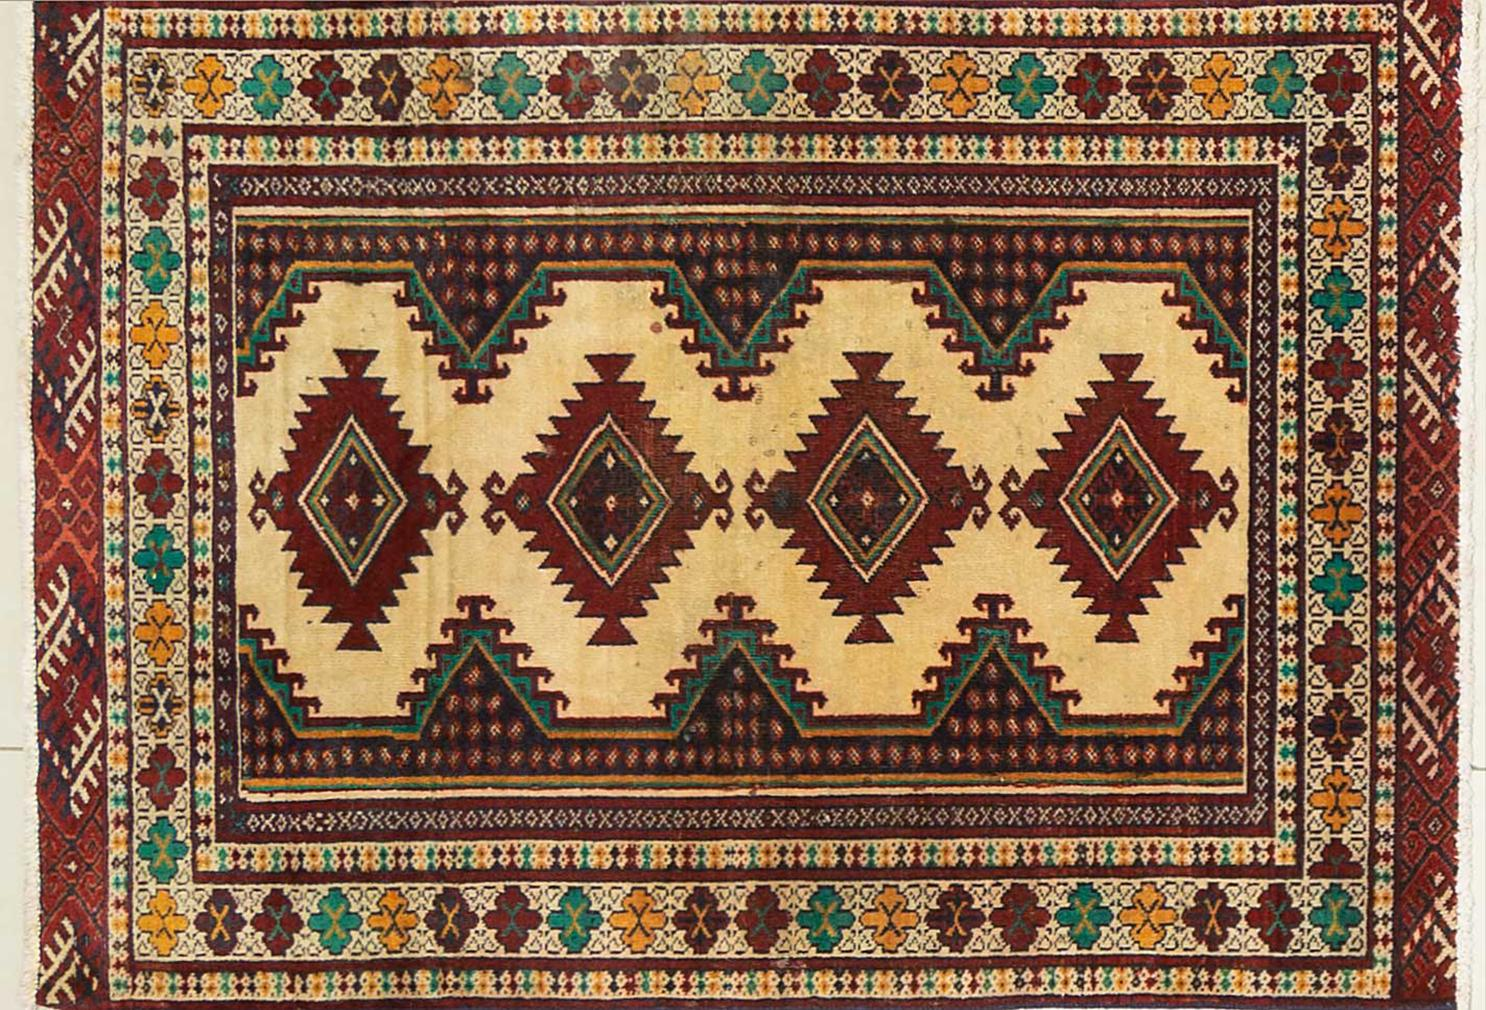 A Persian Hand Knotted Turkaman Rug, 120 x 85